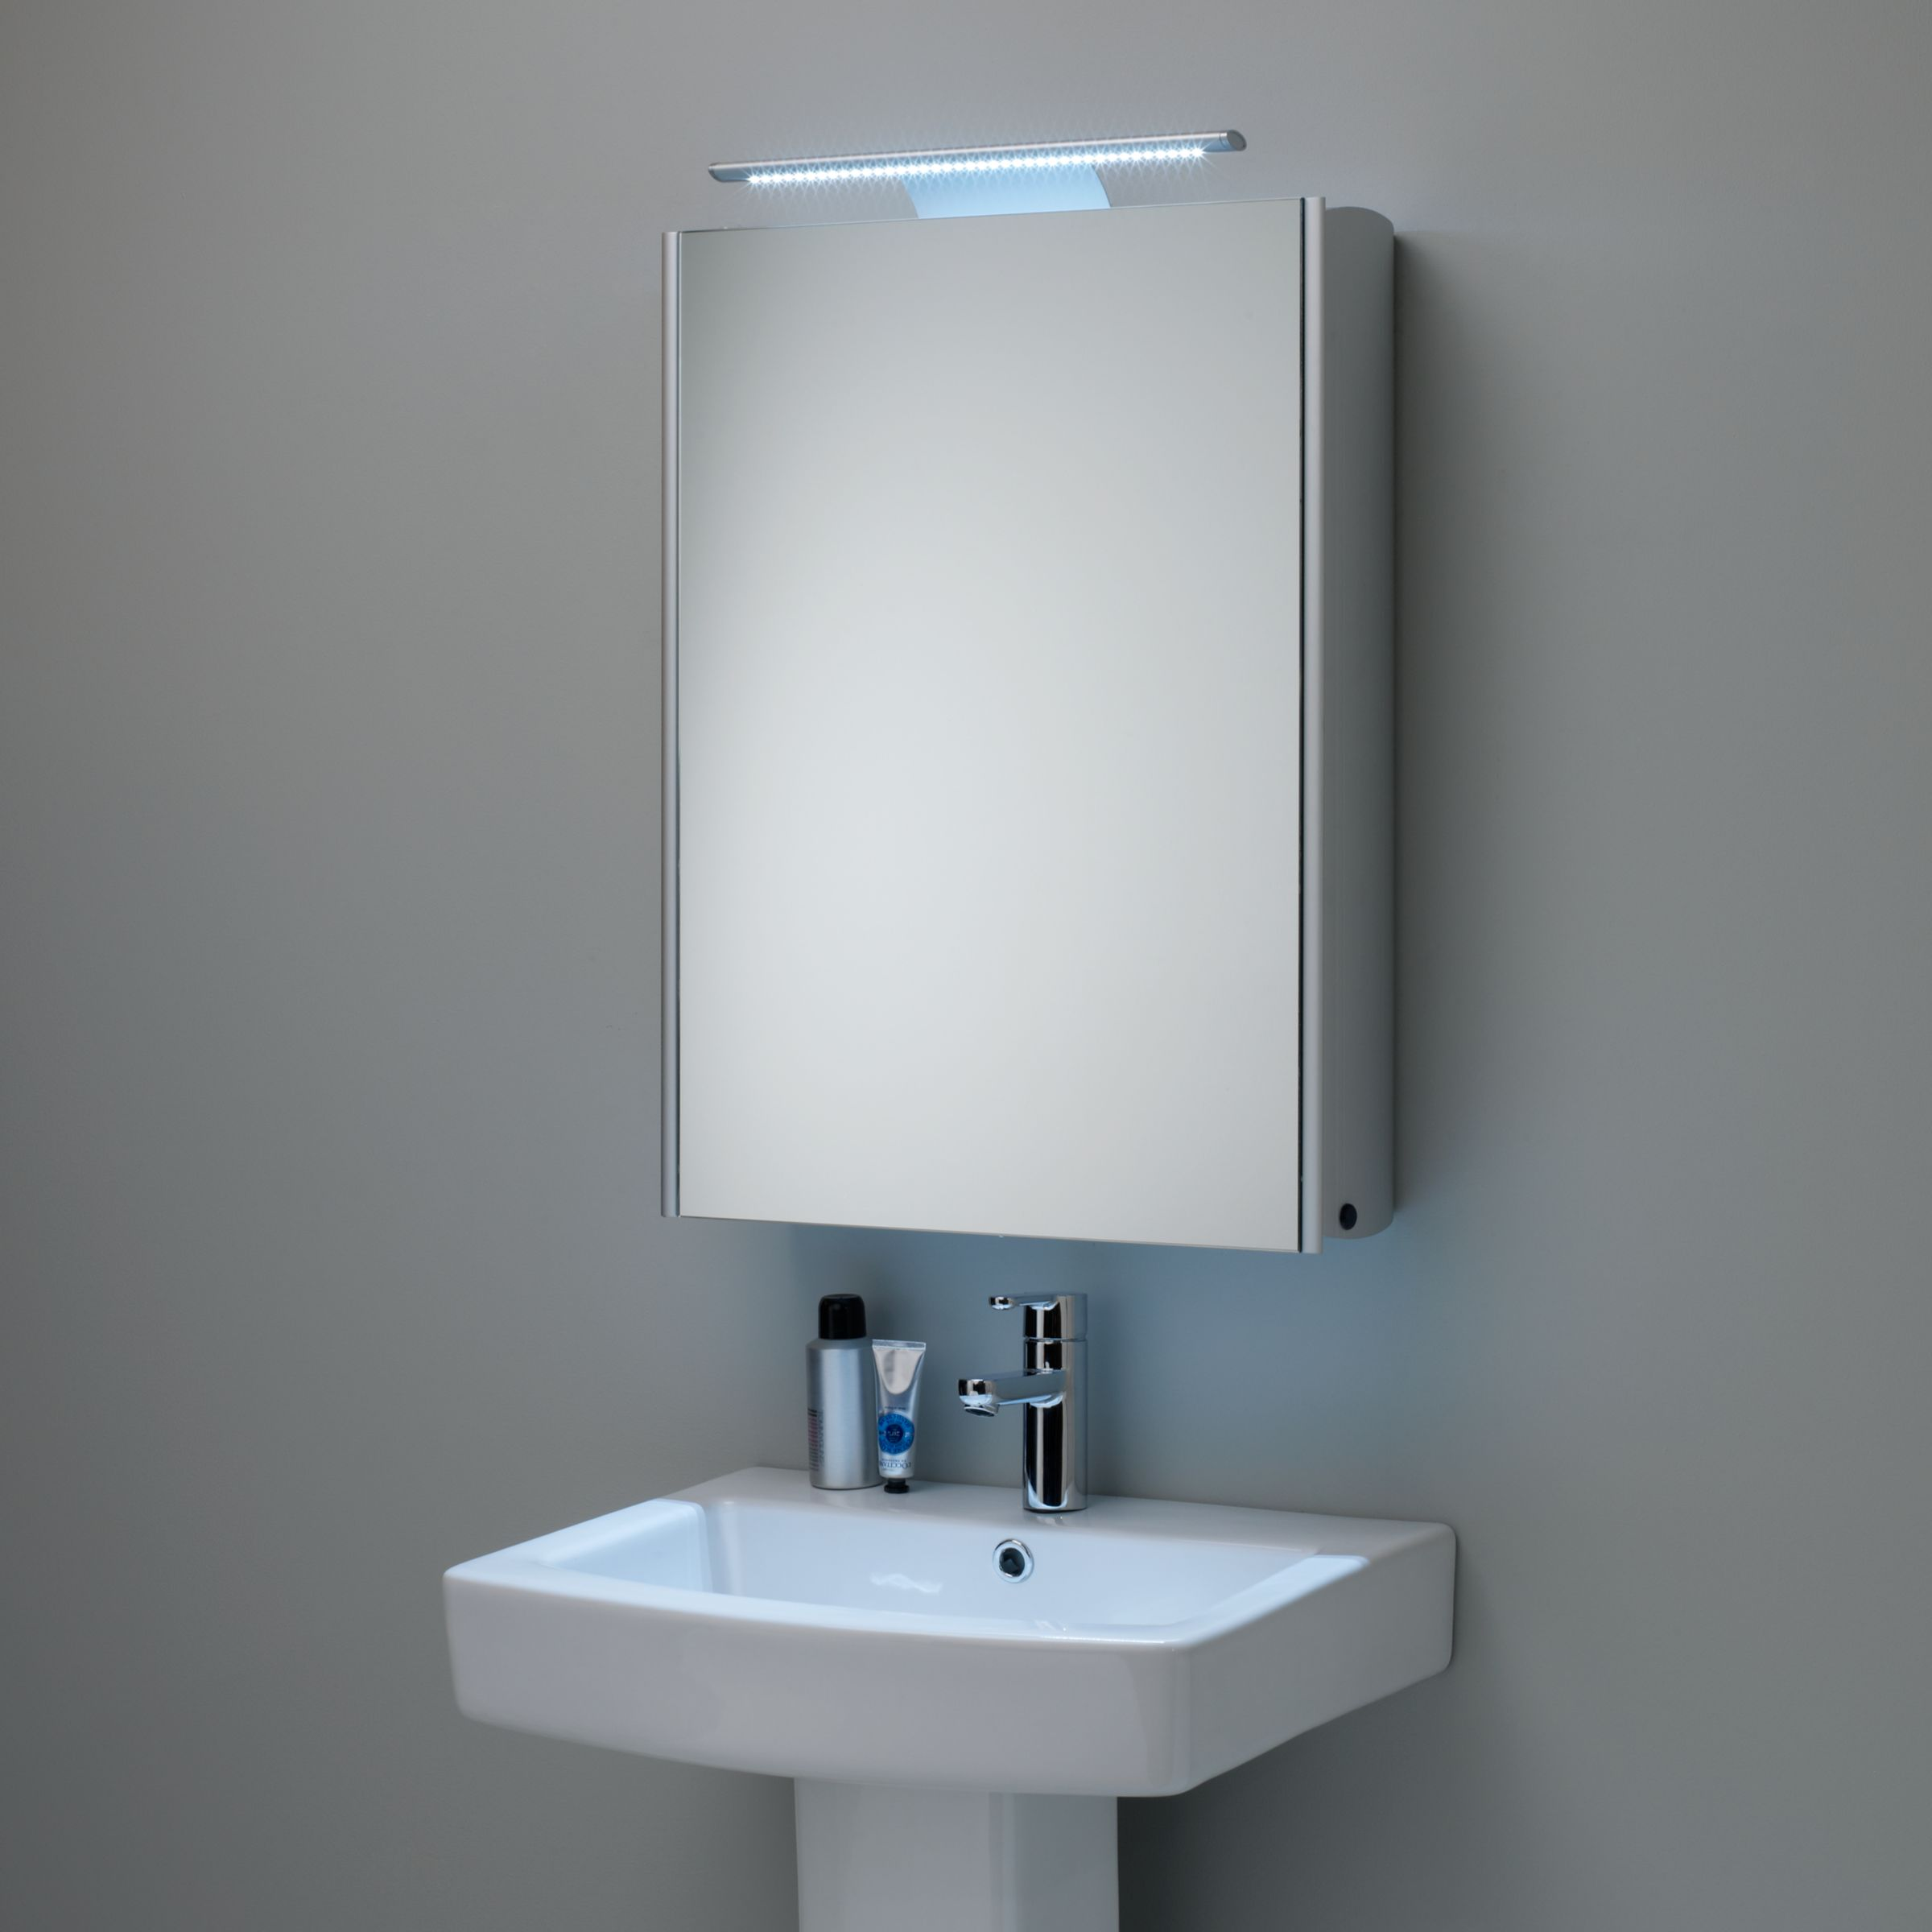 Innovative  Bathroom Mirror 842v  Illuminated Bathroom Mirrors  Light Mirrors